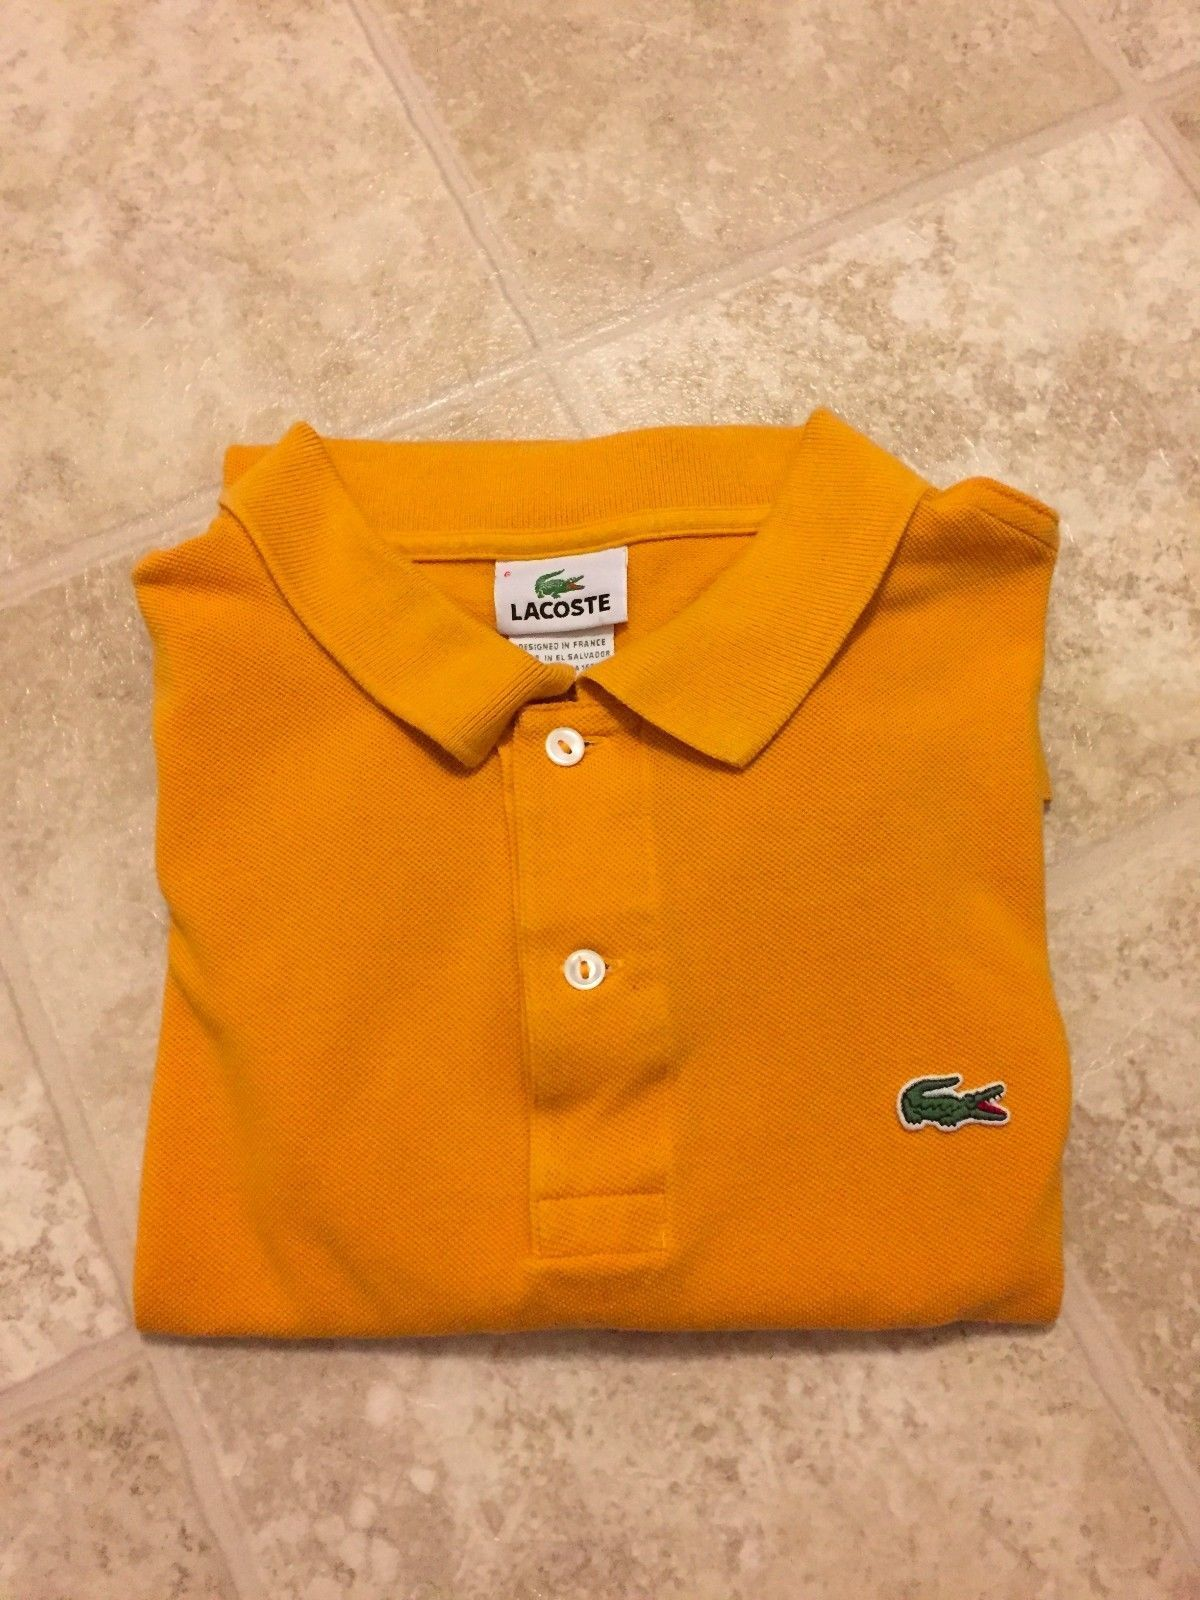 Lacoste Mens Short Sleeve Polo Shirt Size And 44 Similar Items